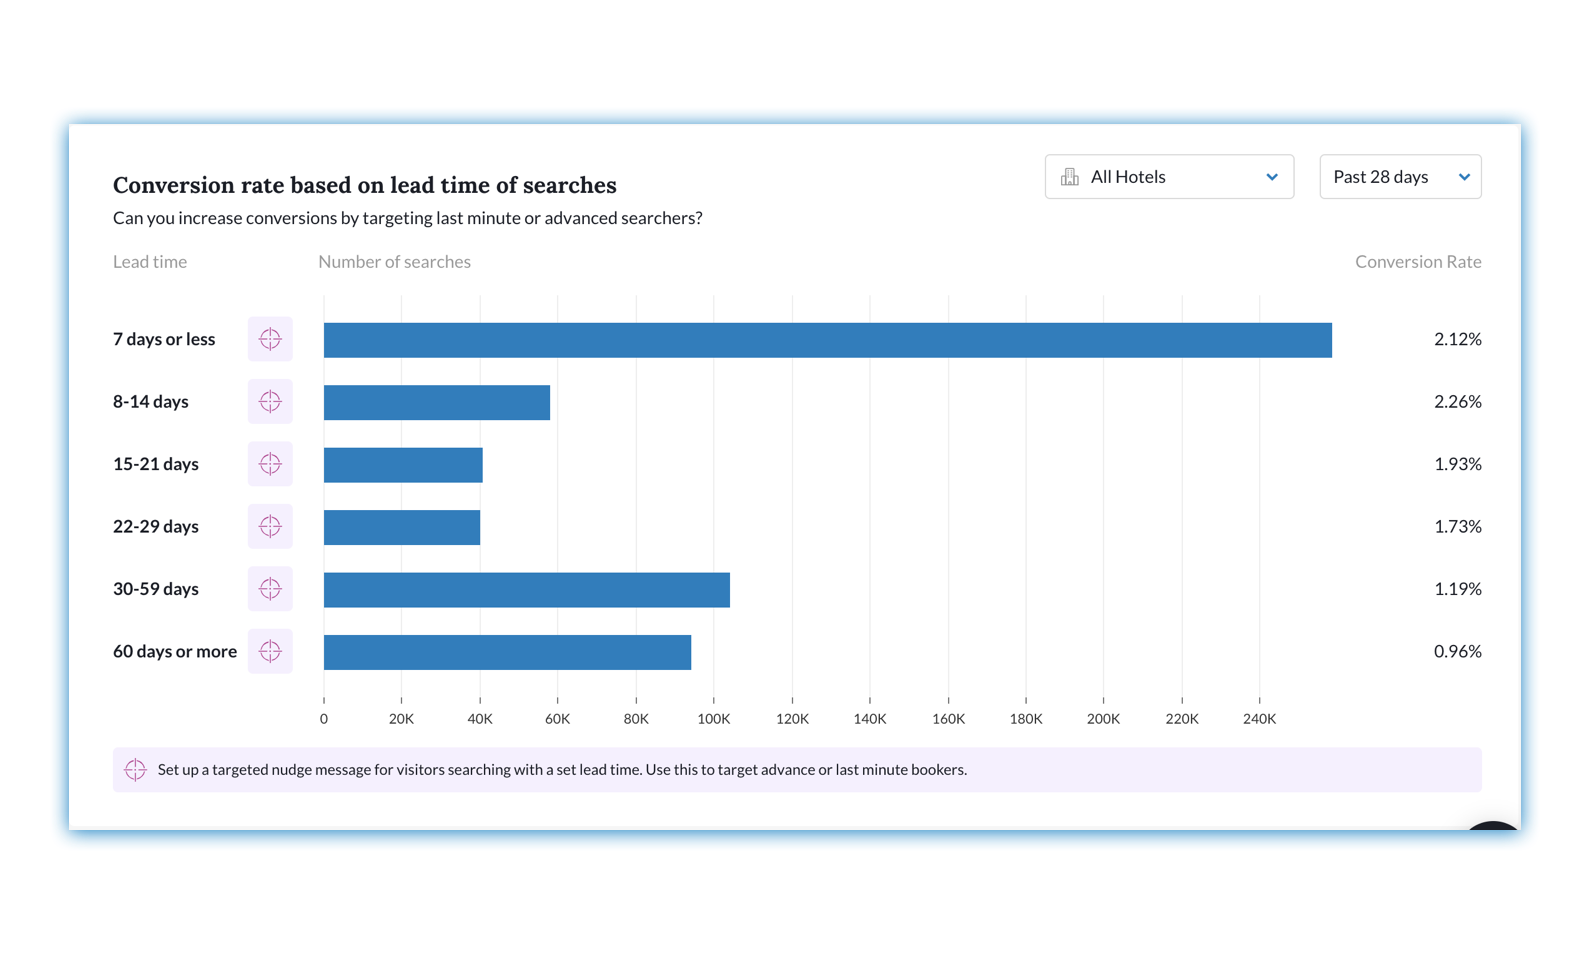 Screen shot of the 'Conversion based on lead time of searches' graph from the Insights Dashboard